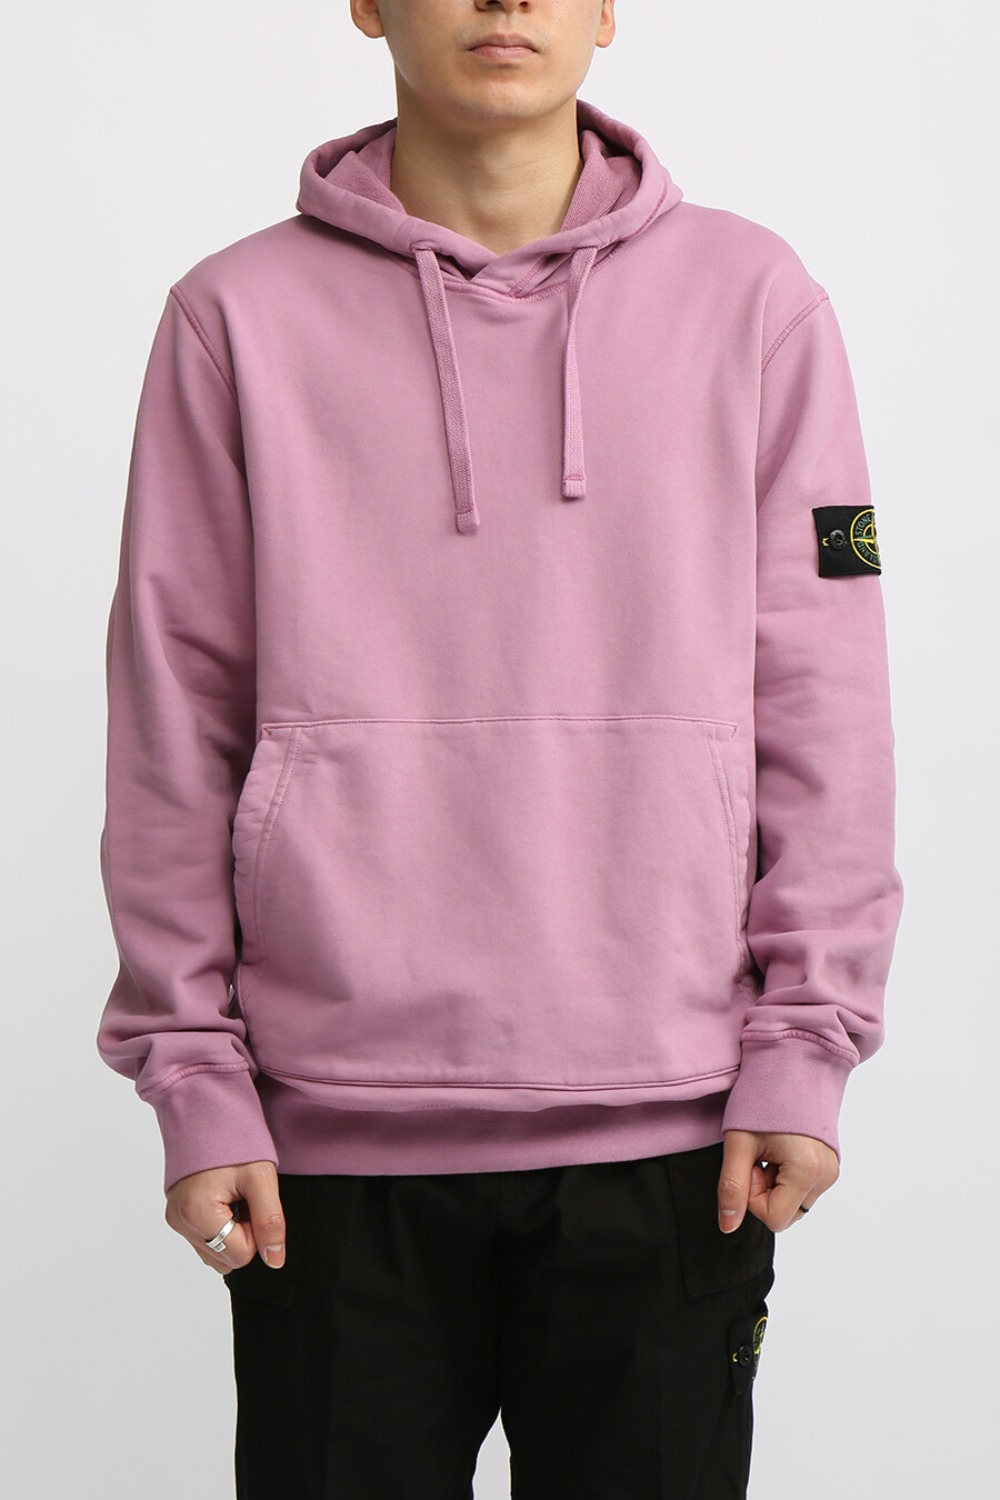 COTTON FLEECE GARMENT DYED HOODED SWEAT SHIRT PINK